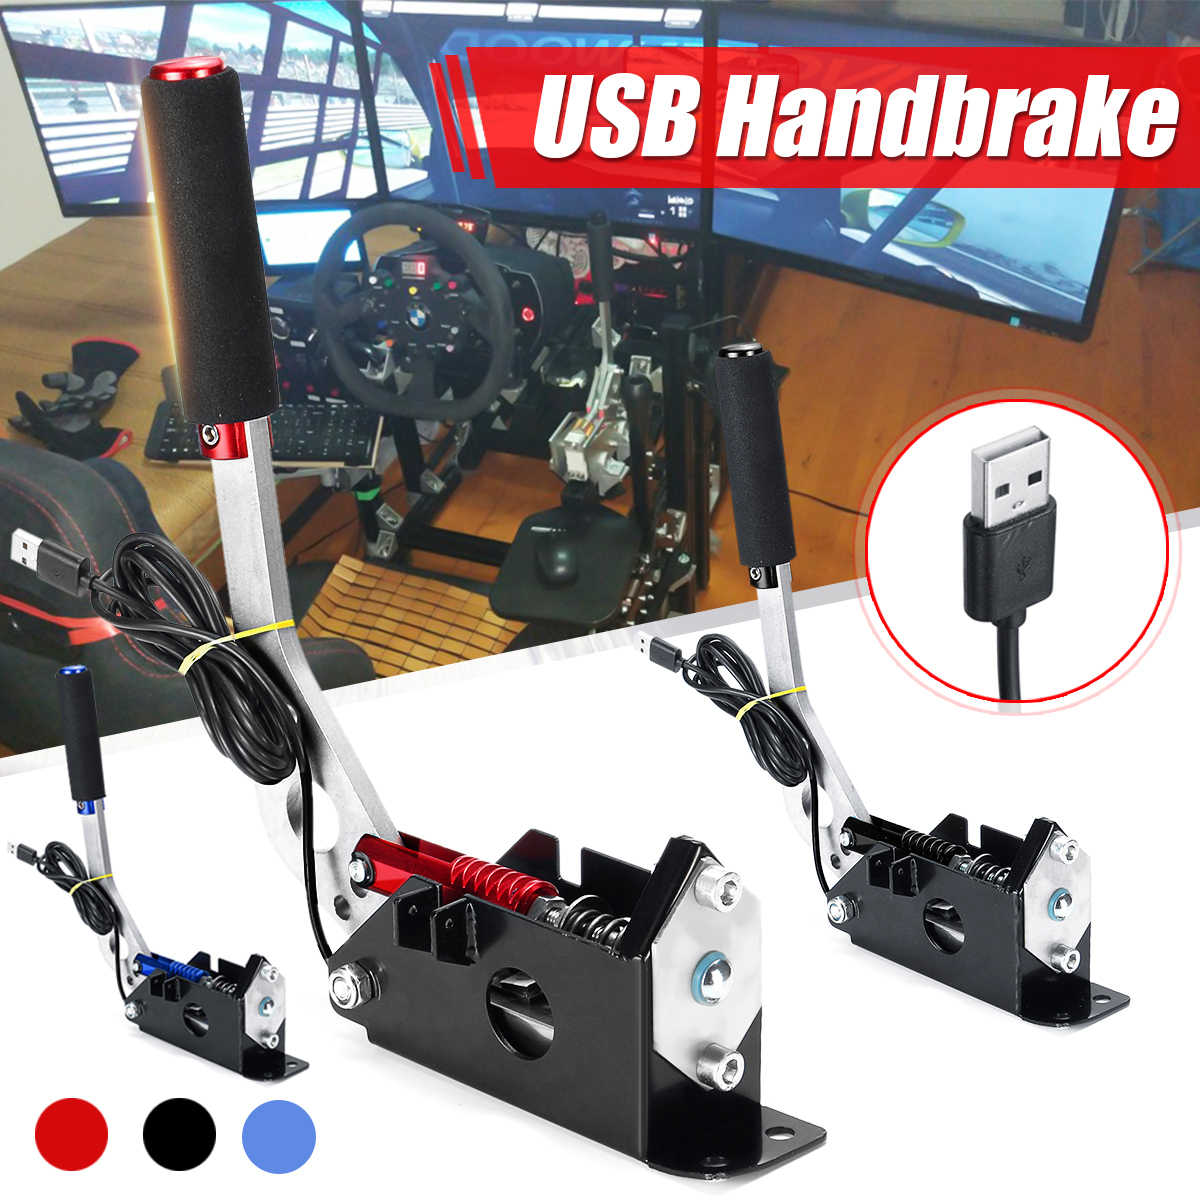 Compatible for PC//windows system only USB SIM Handbrake With Clamp For Racing Games G25 G29 T500 Universal Handbrake for SIM Racing